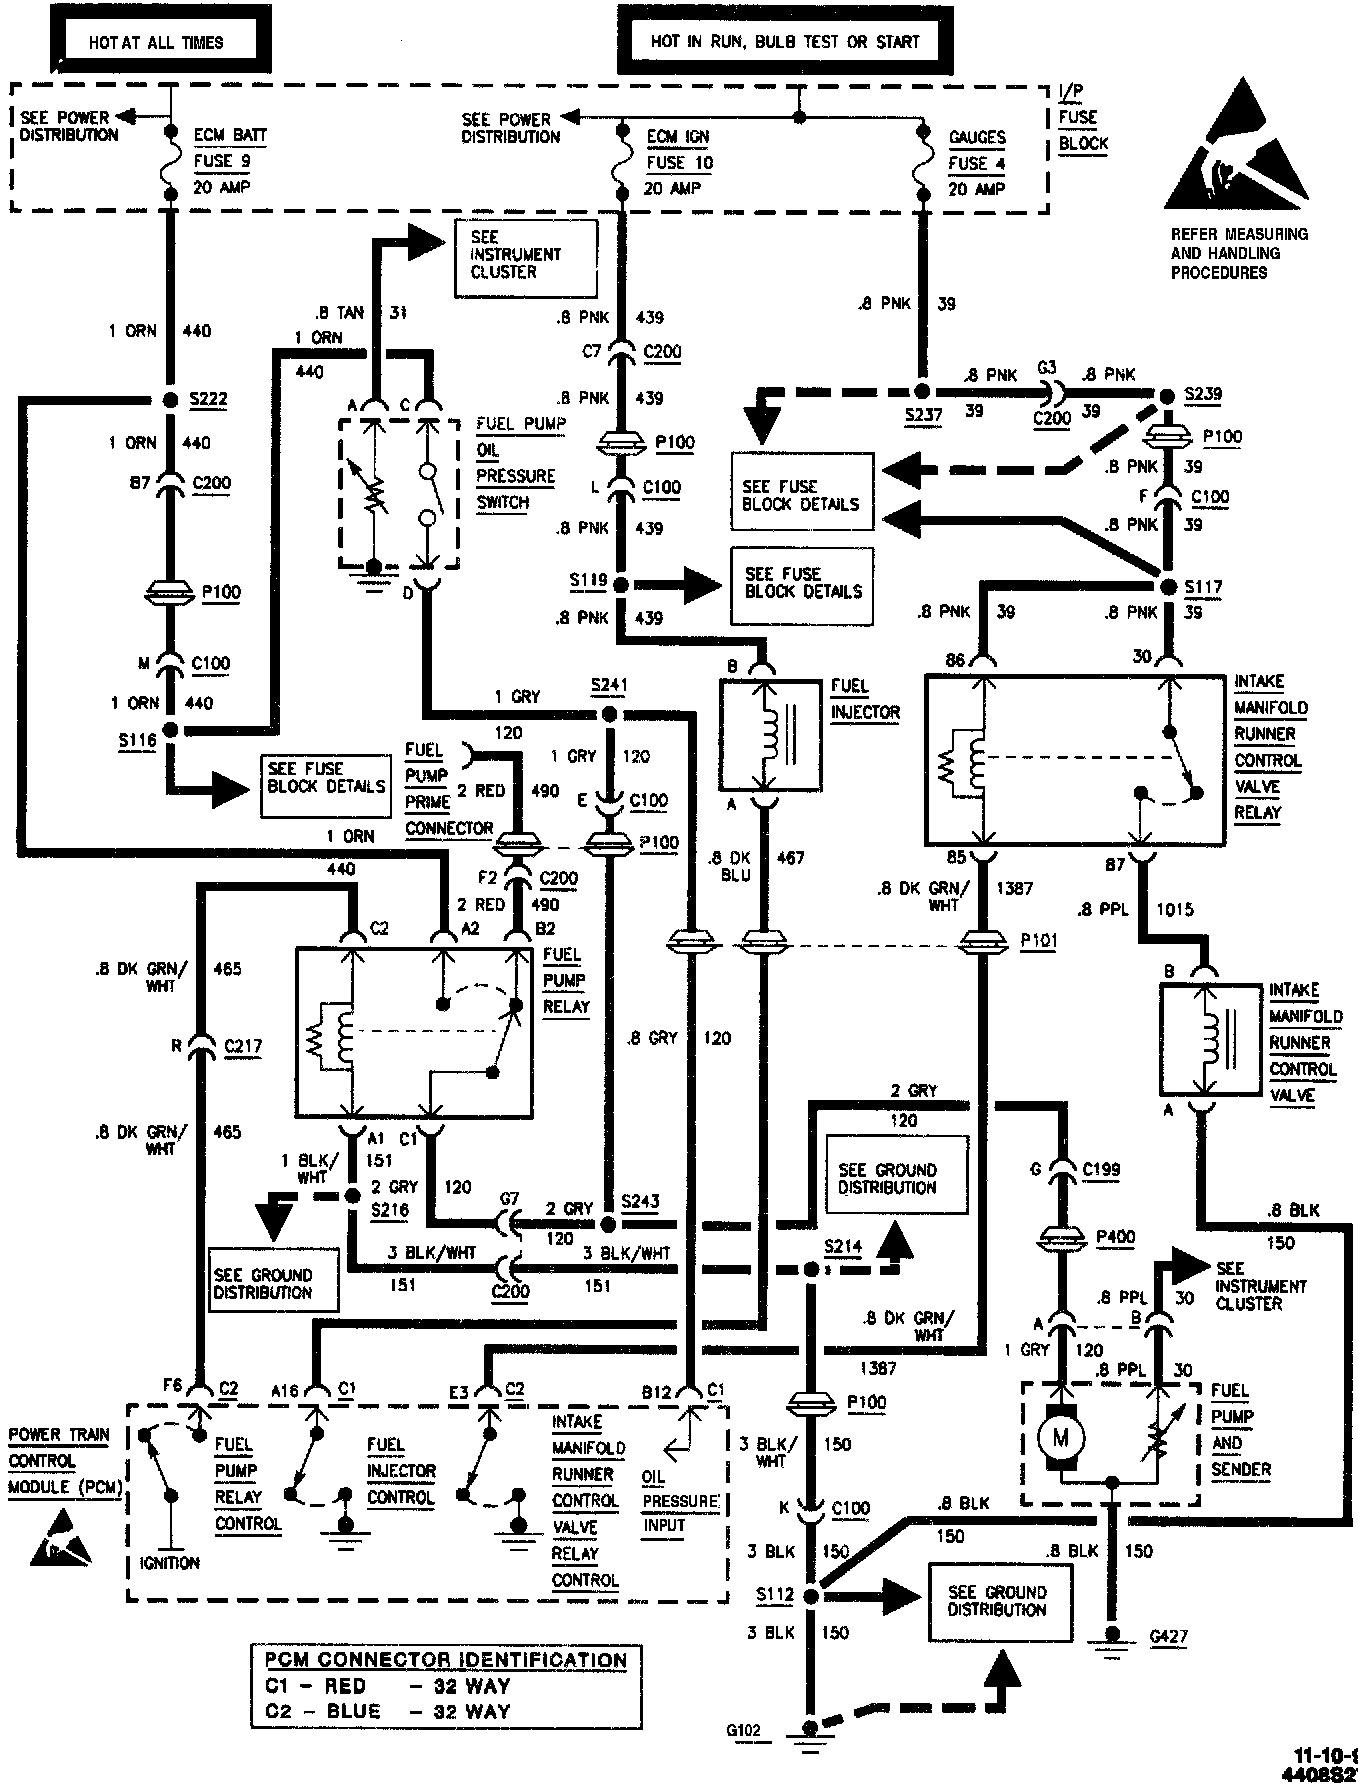 T1 Wiring Diagram Pdf For Professional 2000 S10 Diagrams Schema Img Rh 2 8 Derleib De Rj45 Circuit